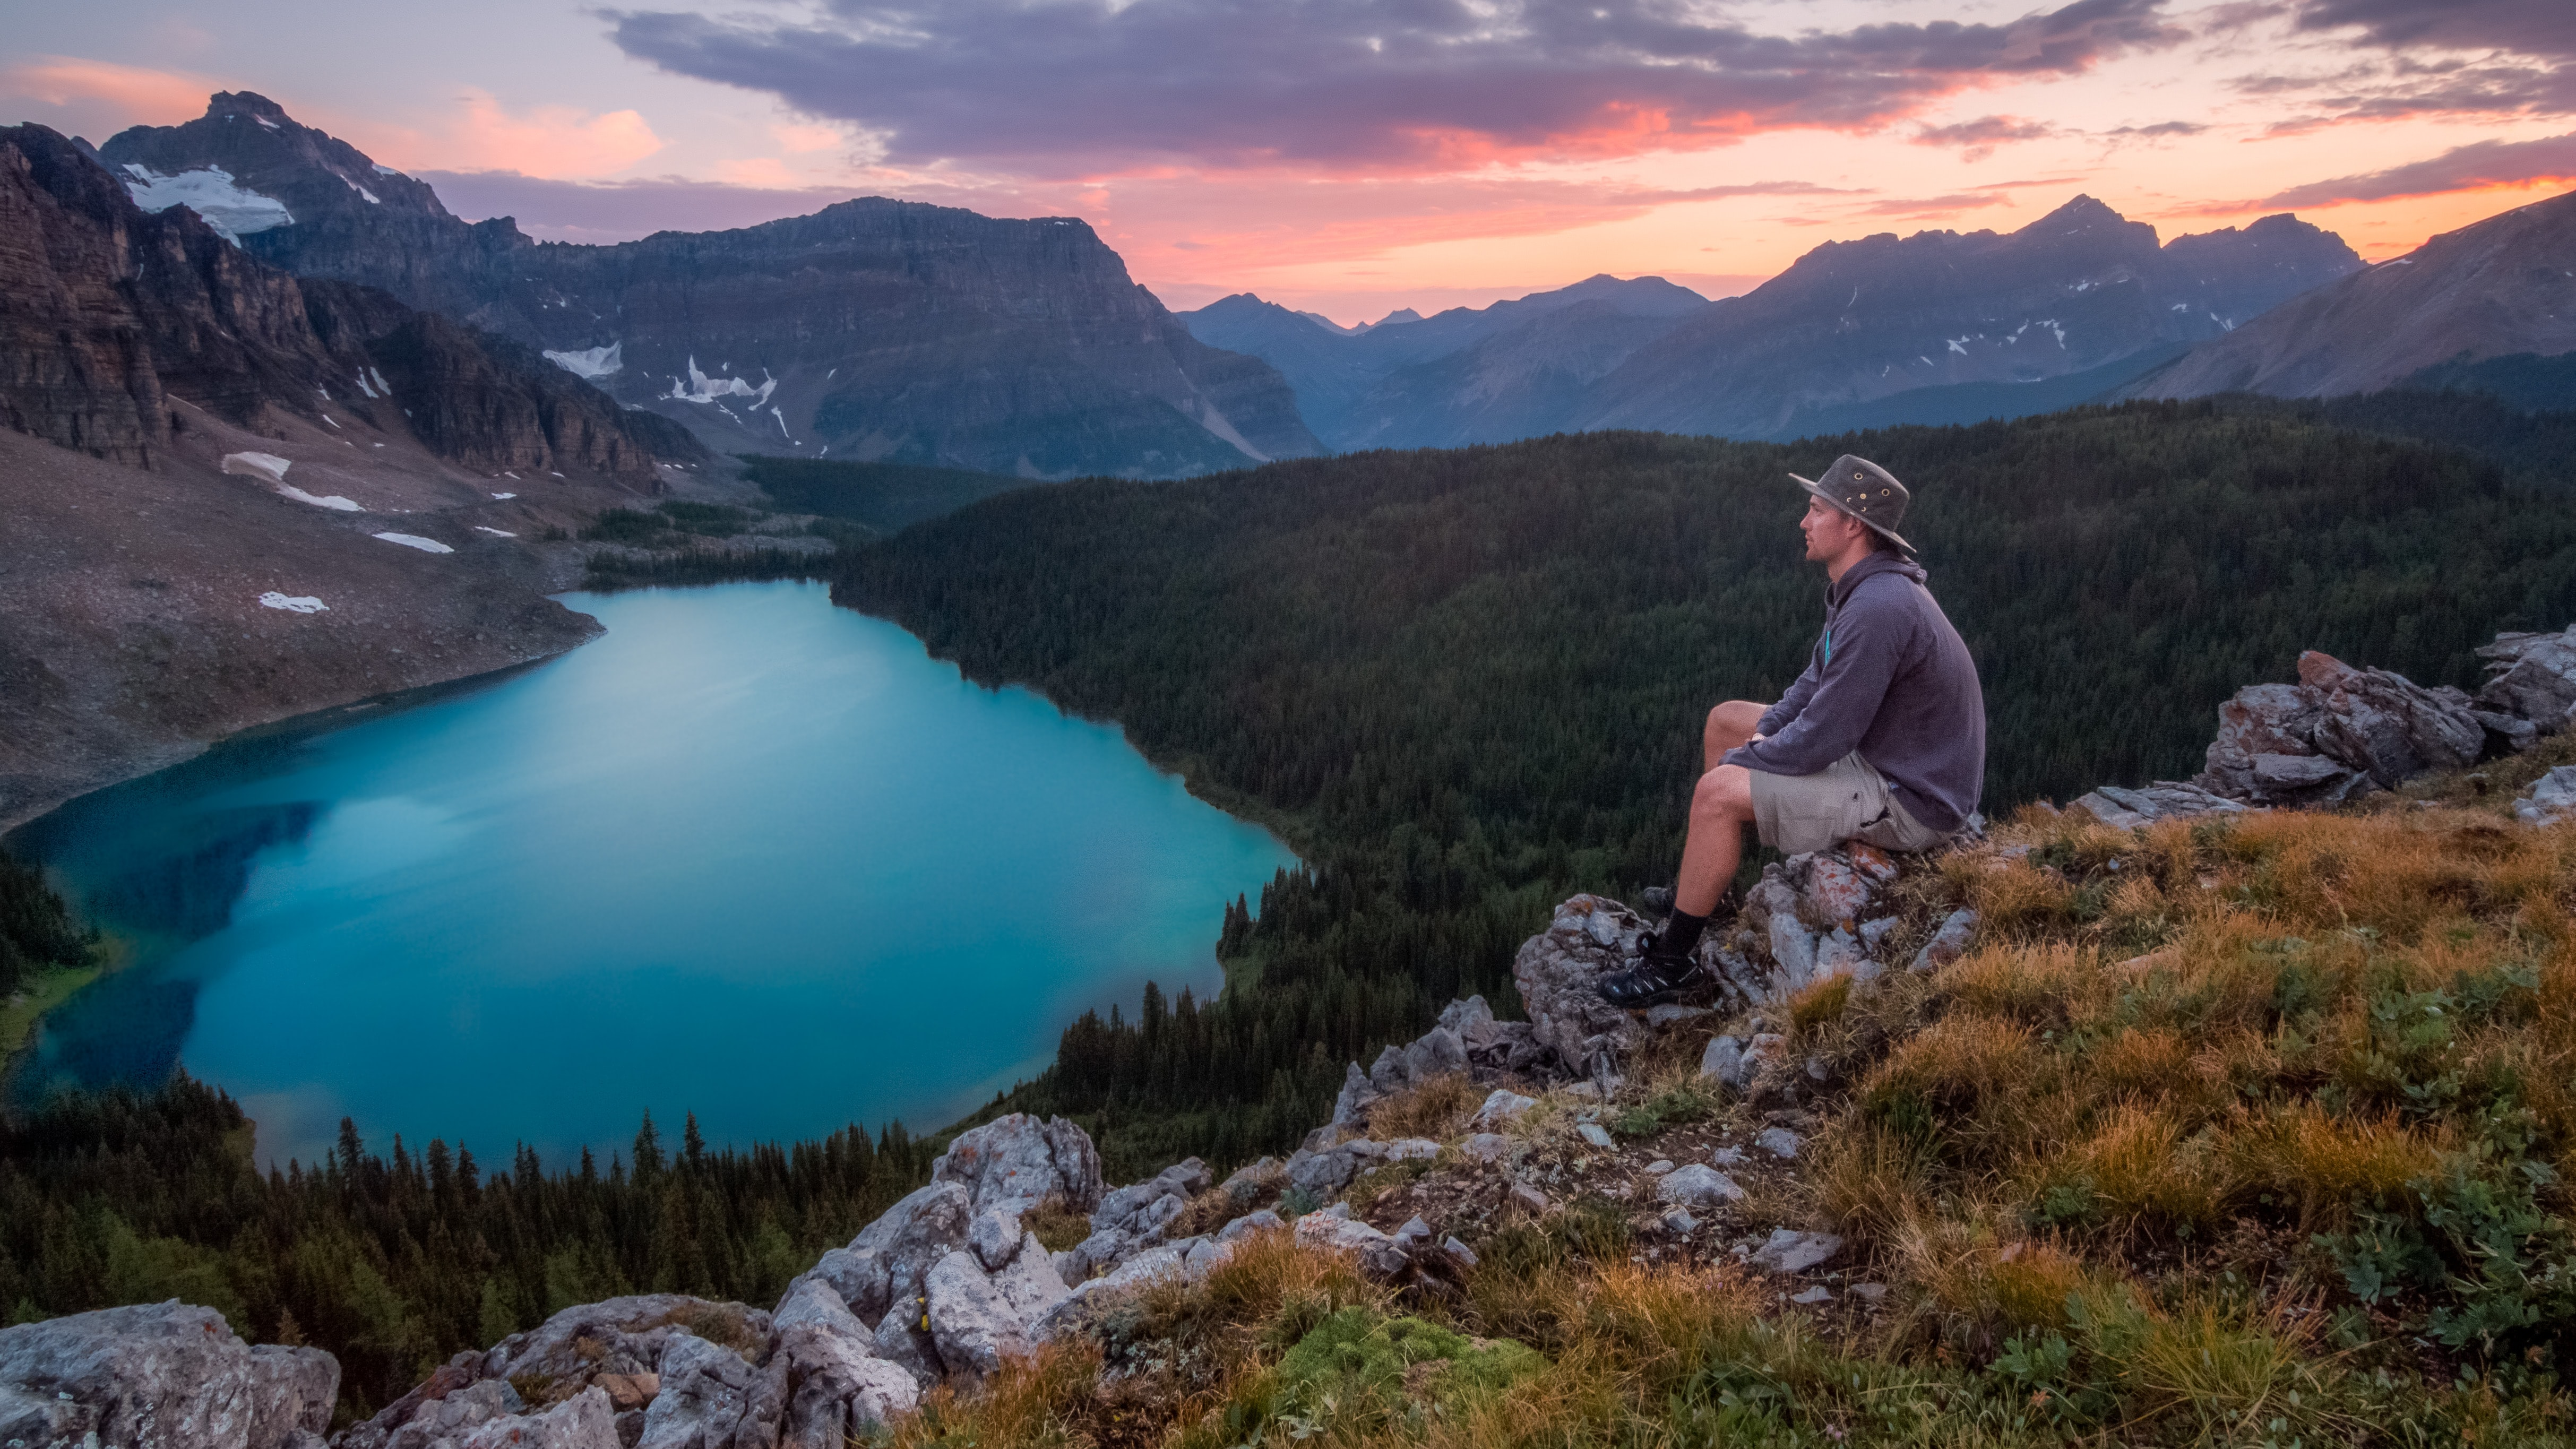 A man in a hat sitting on rocks overlooking a mountain lake